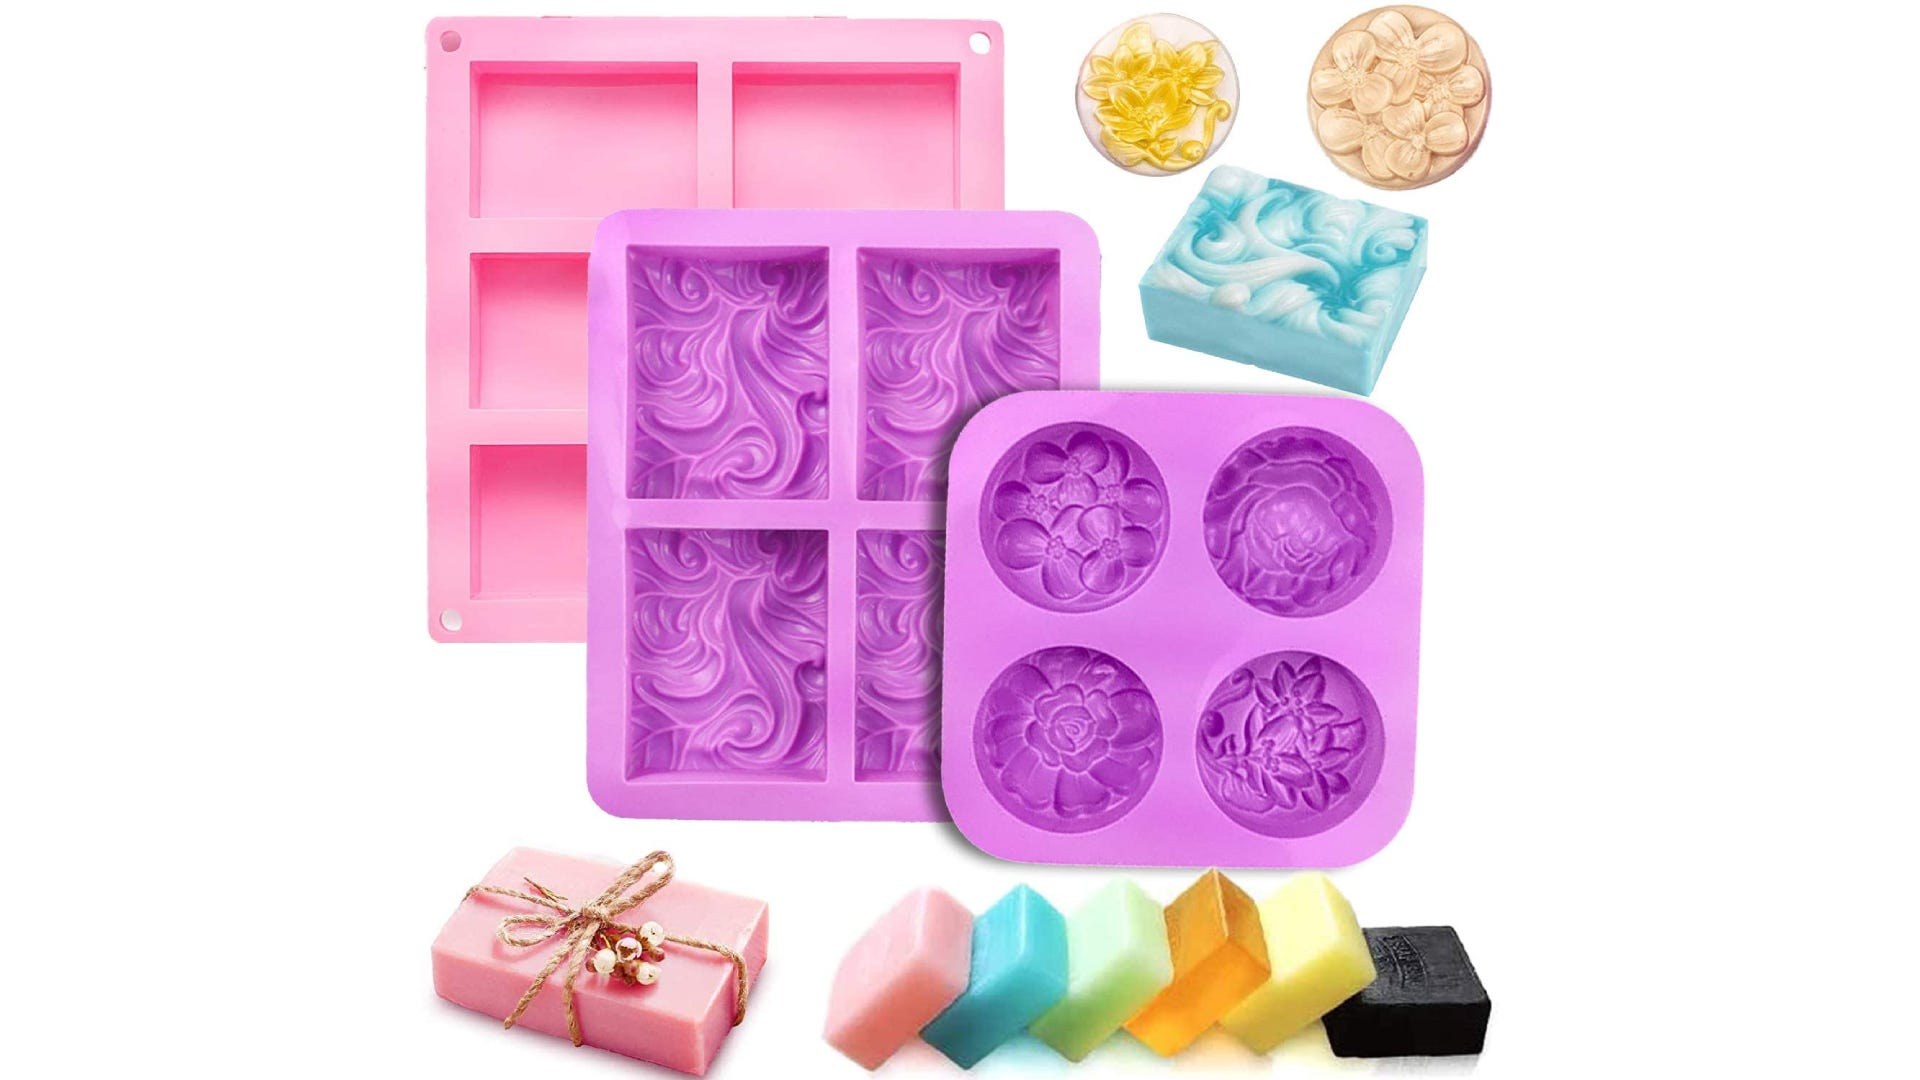 three differently sized and patterned silicone soap molds